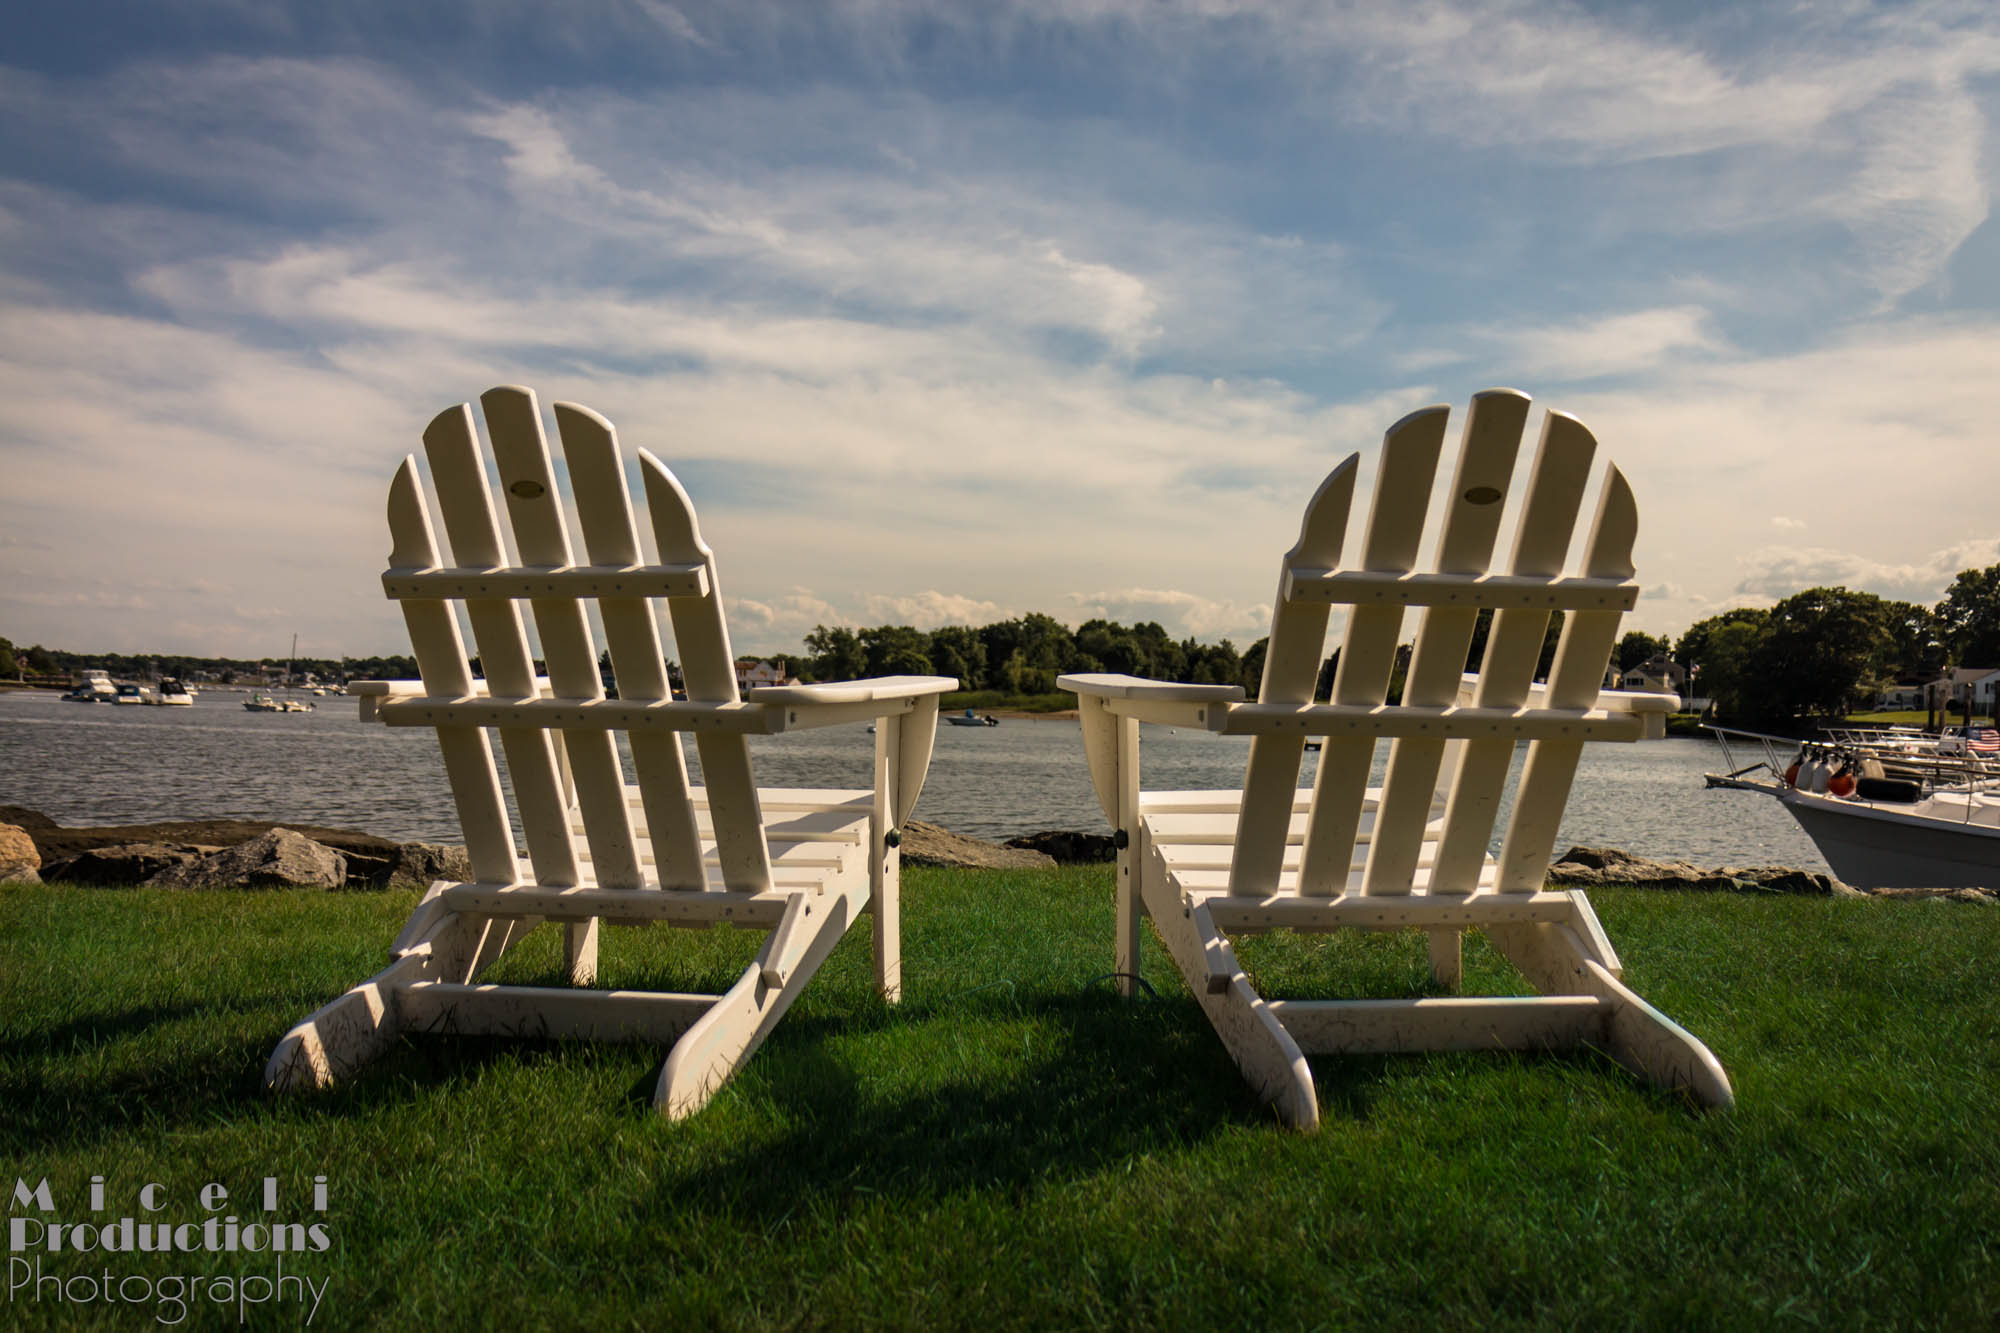 Two adirondack chairs over looking a smooth harrbor of water. © Miceli Productions Photography